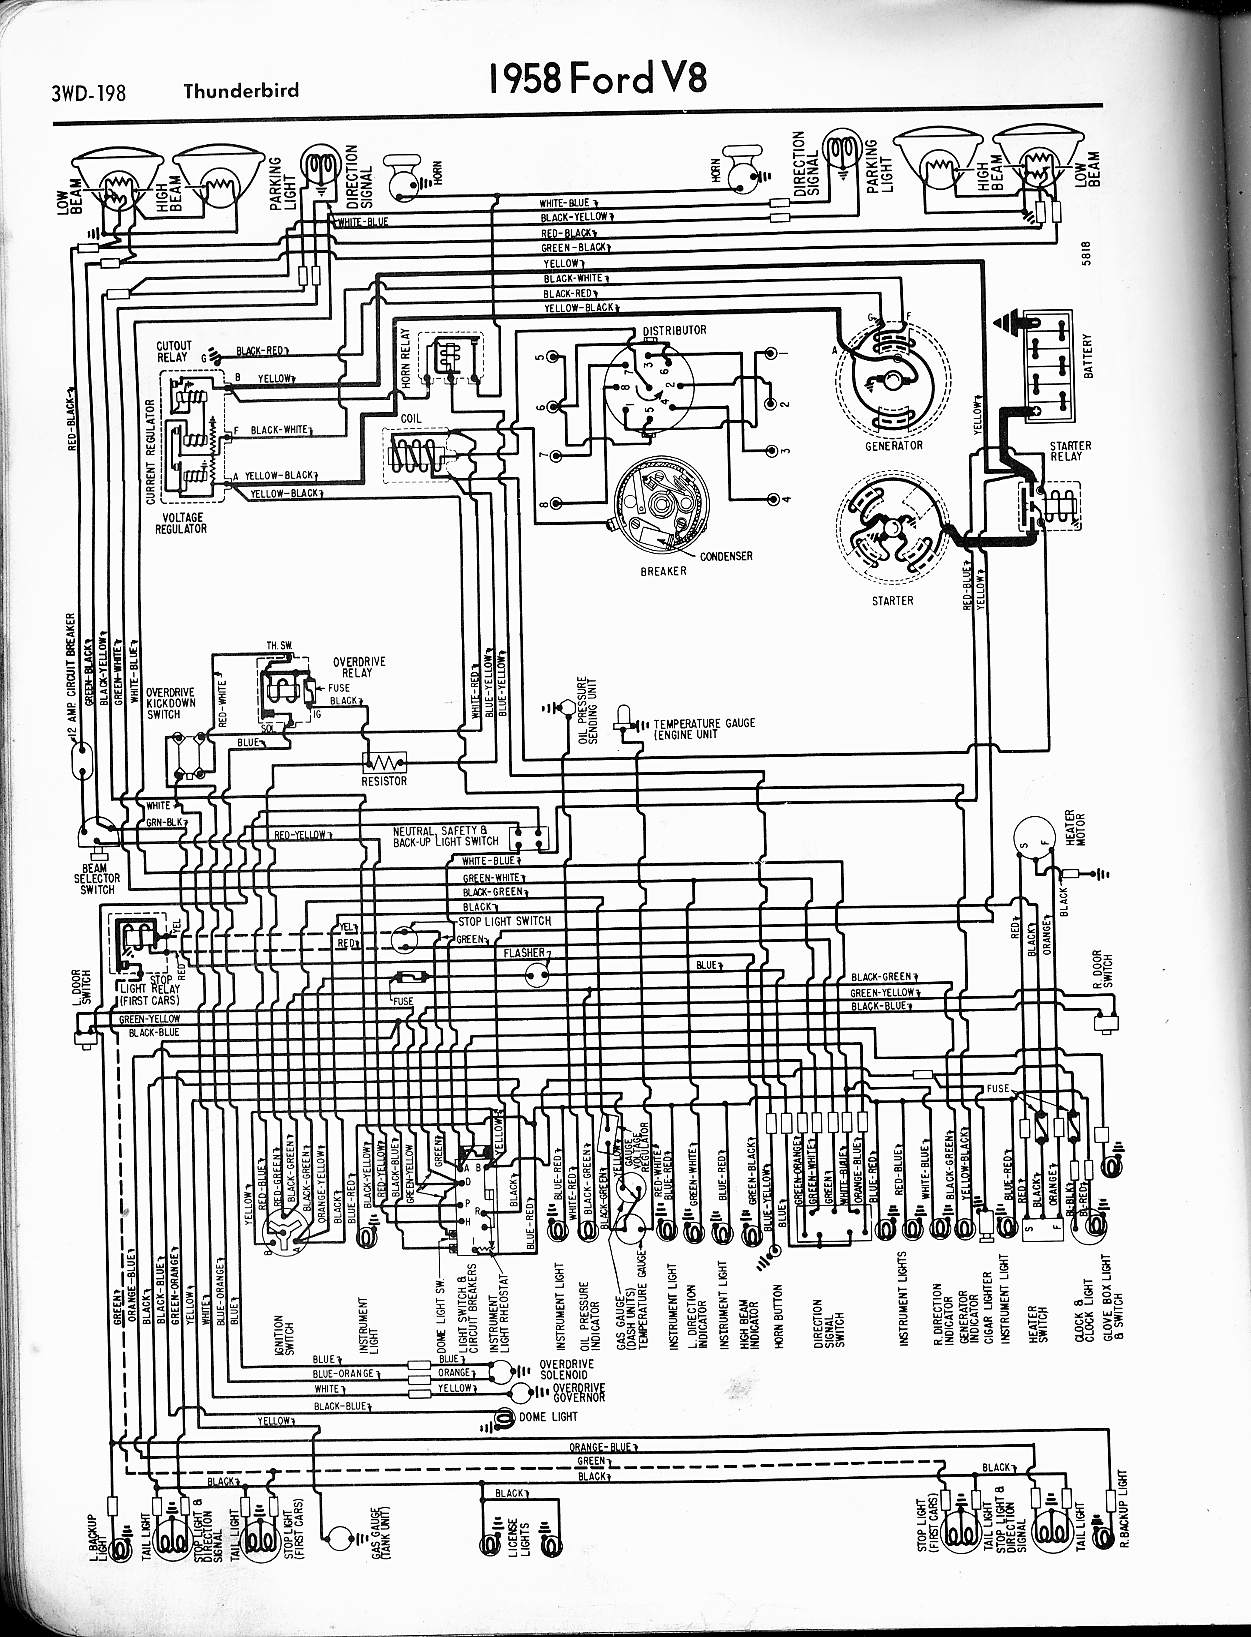 MWire5765 198 57 65 ford wiring diagrams 1957 Thunderbird Dash at webbmarketing.co